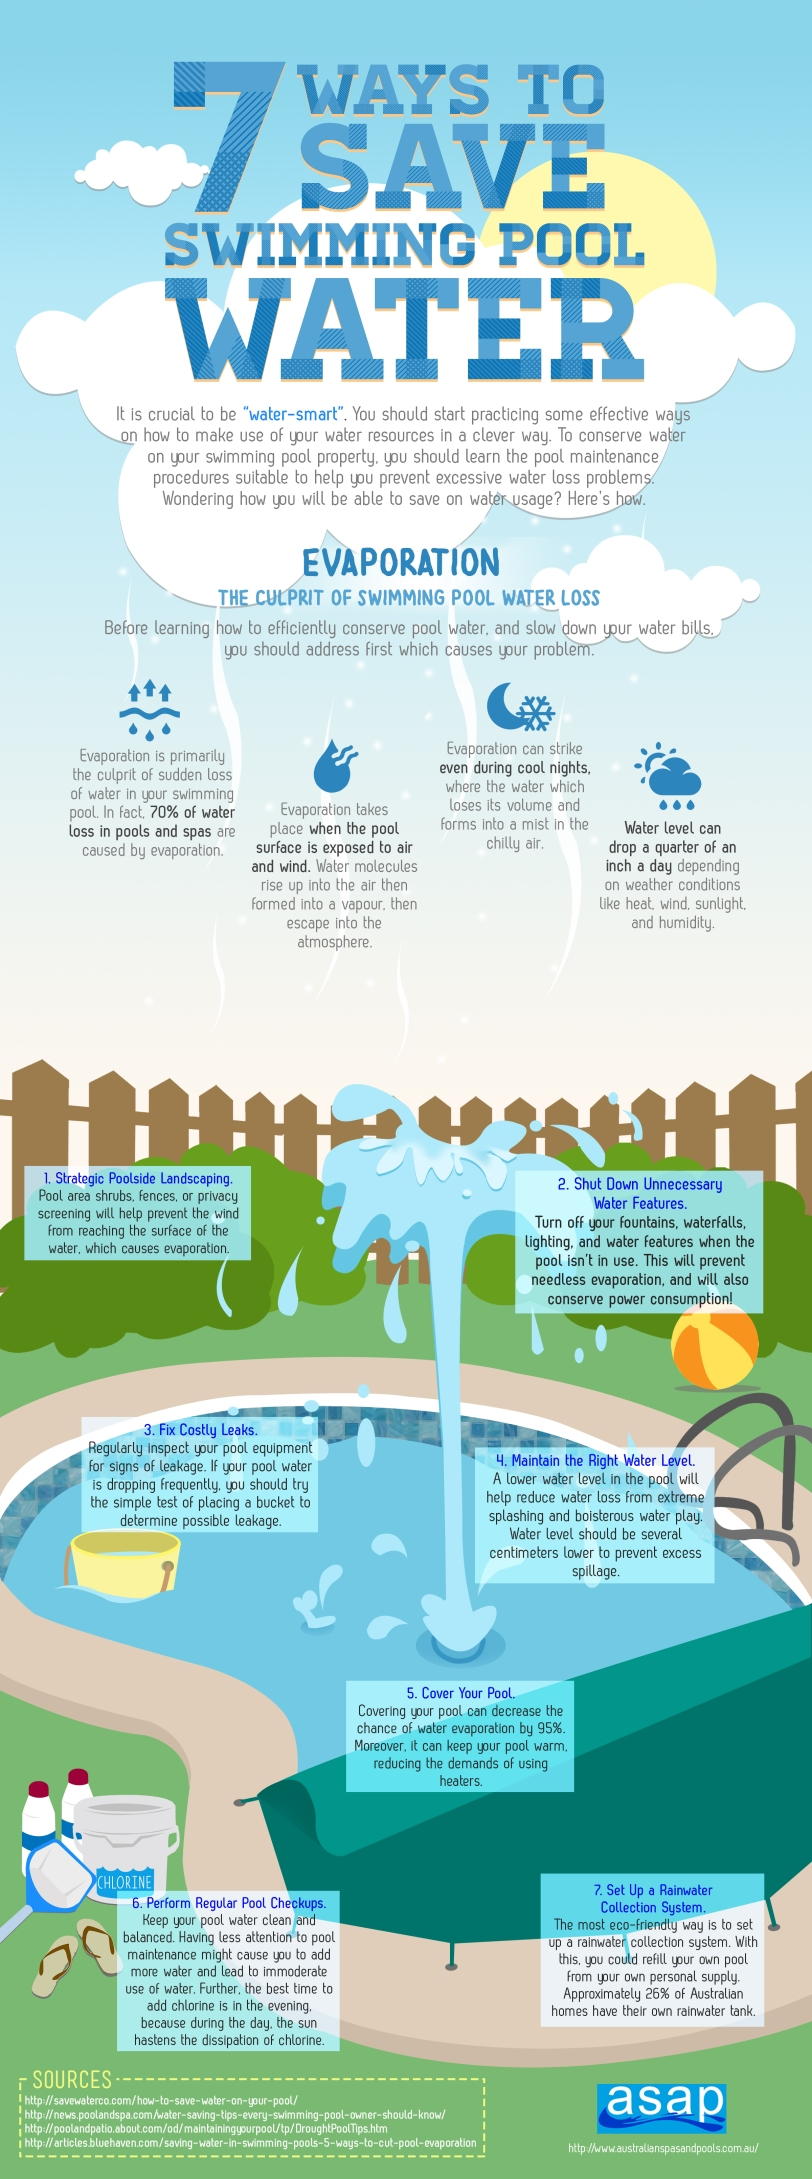 7 Ways to Save Swimming Pool Water by asap